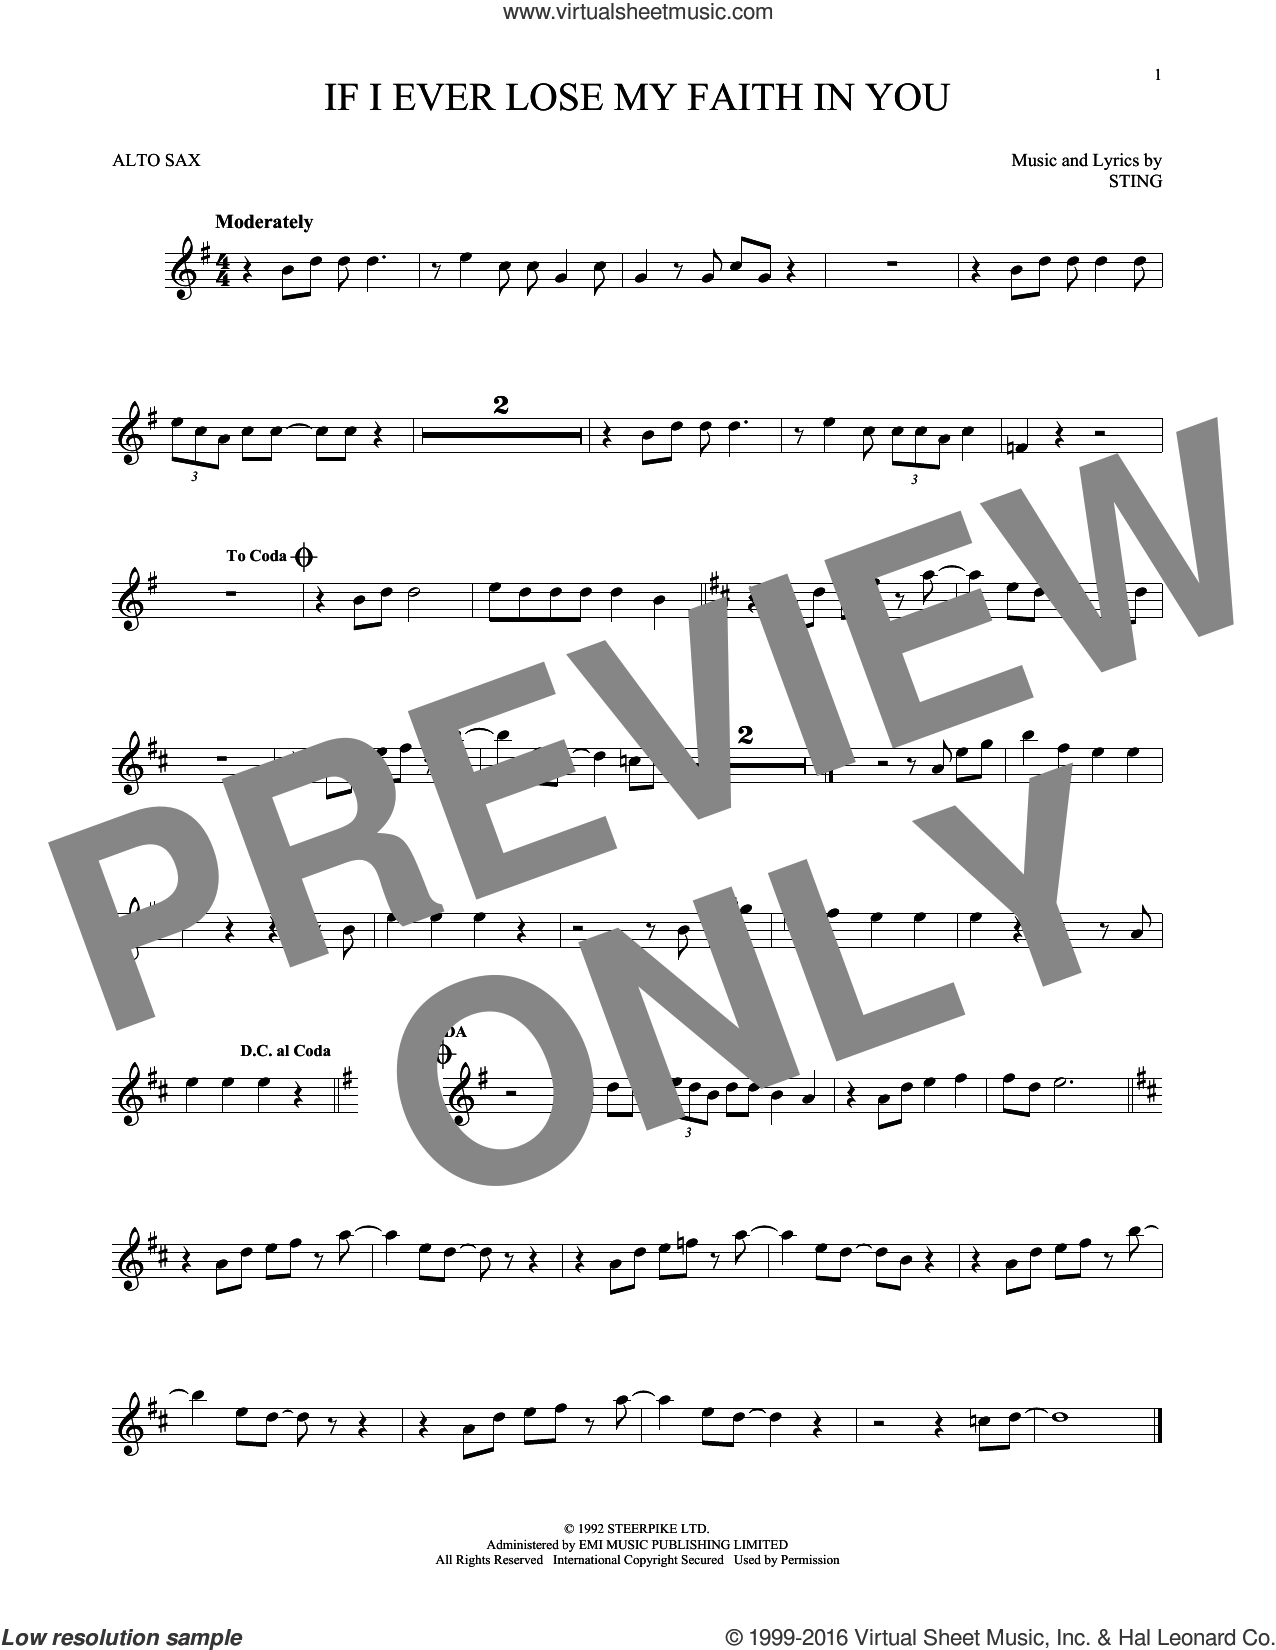 If I Ever Lose My Faith In You sheet music for alto saxophone solo by Sting. Score Image Preview.